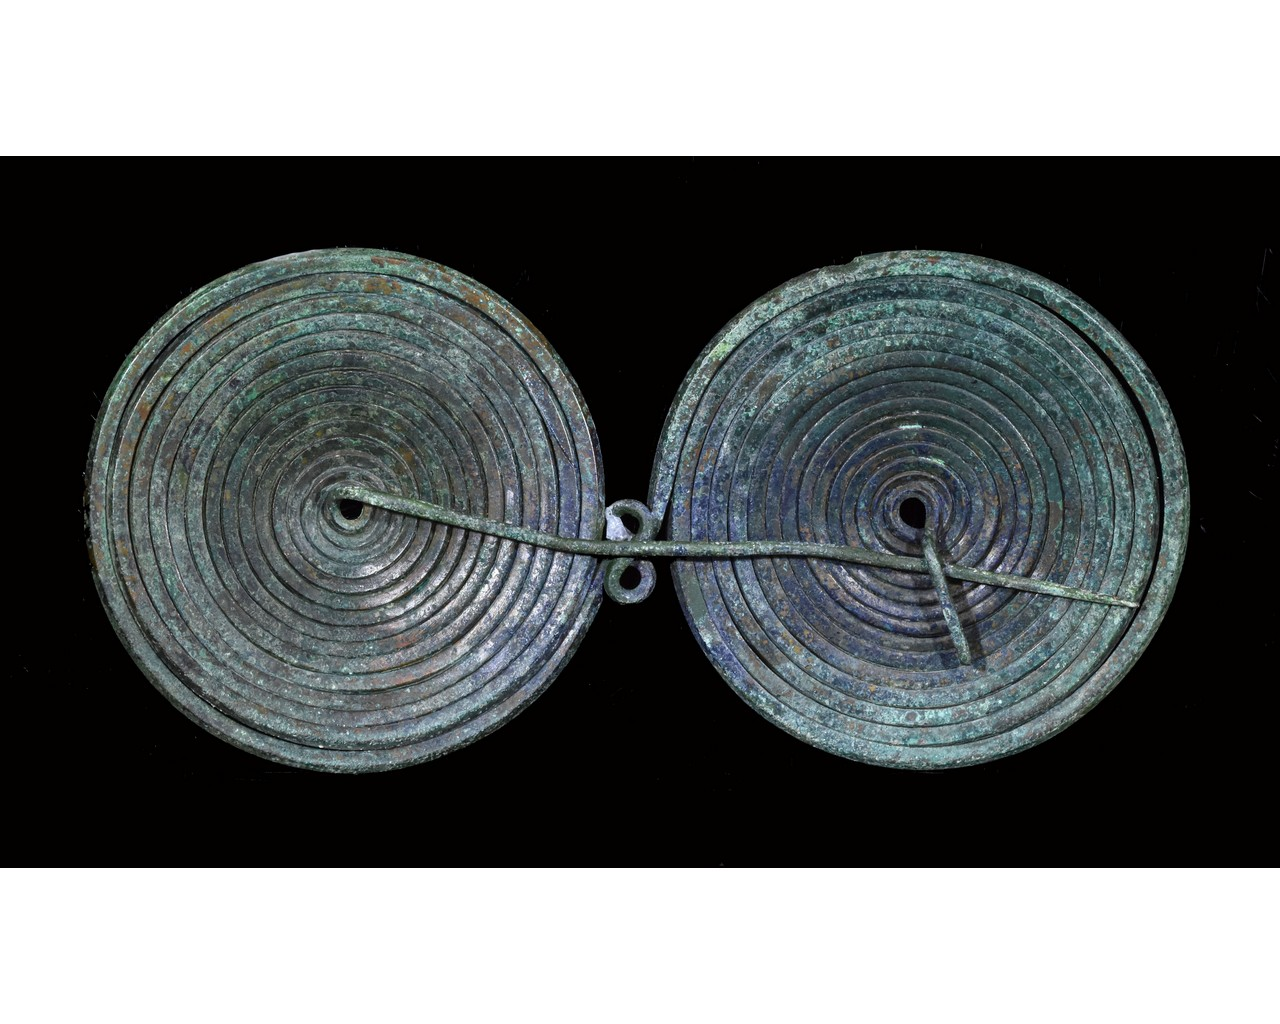 Lot 49 - LARGE BRONZE AGE SPECTACLE BROOCH